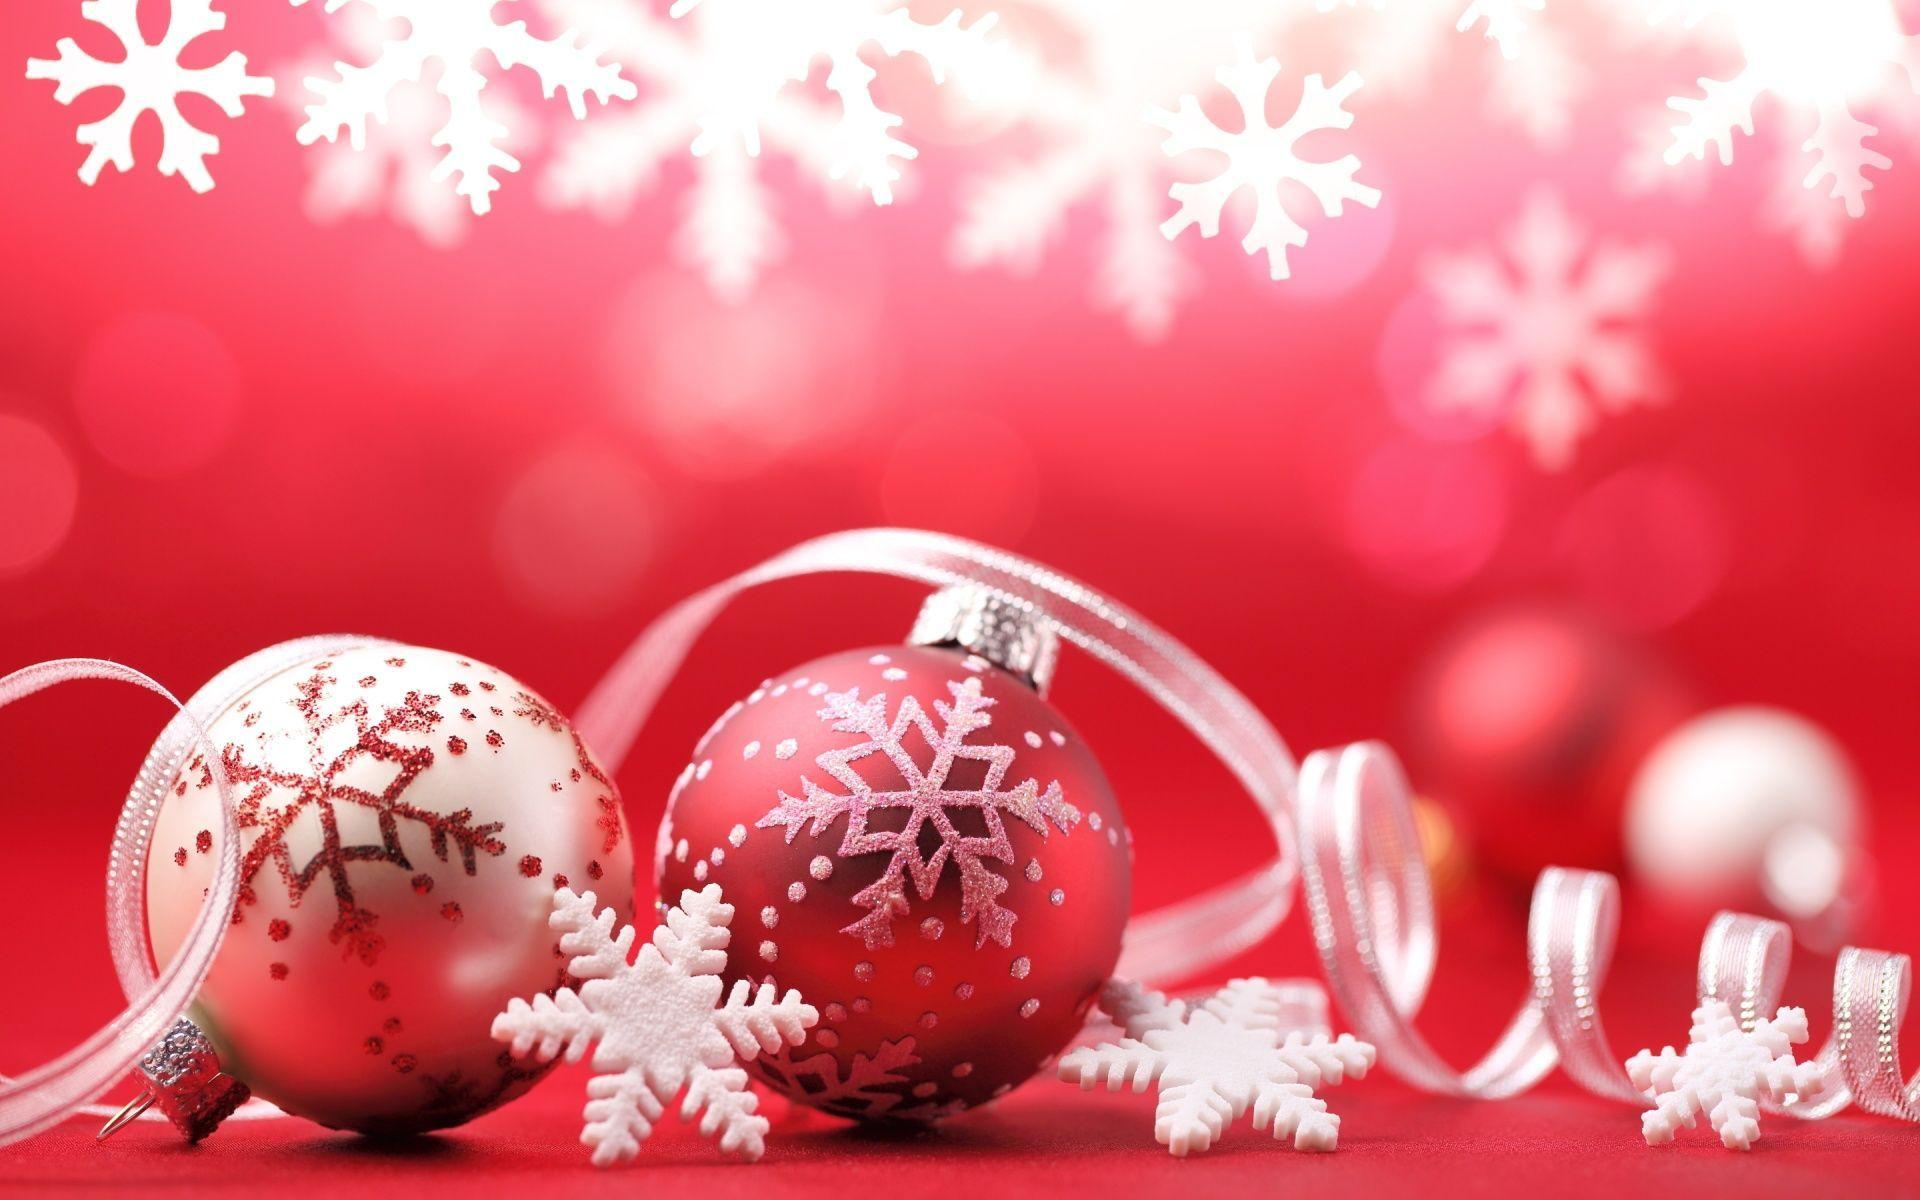 Wallpapers For > Pink Christmas Ornaments Wallpaper